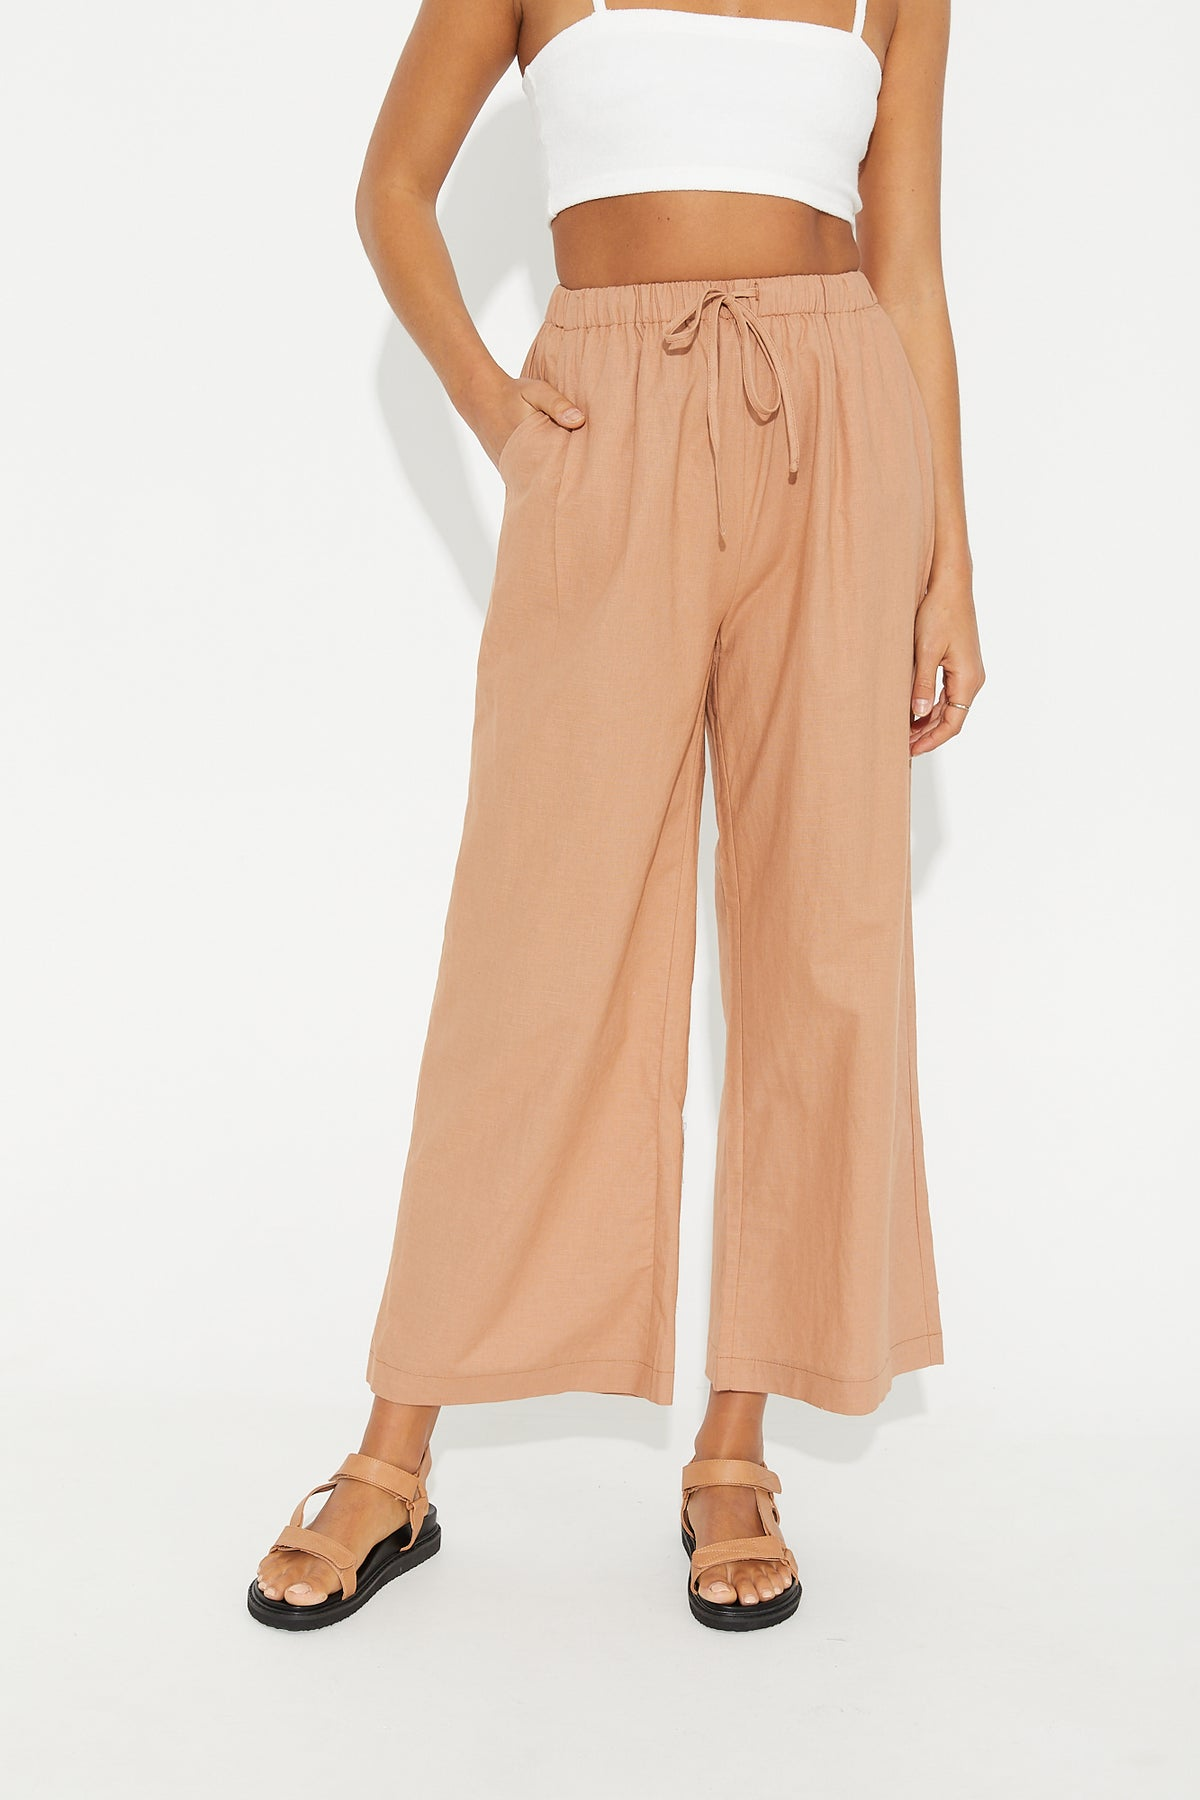 Bella Pant Terracotta